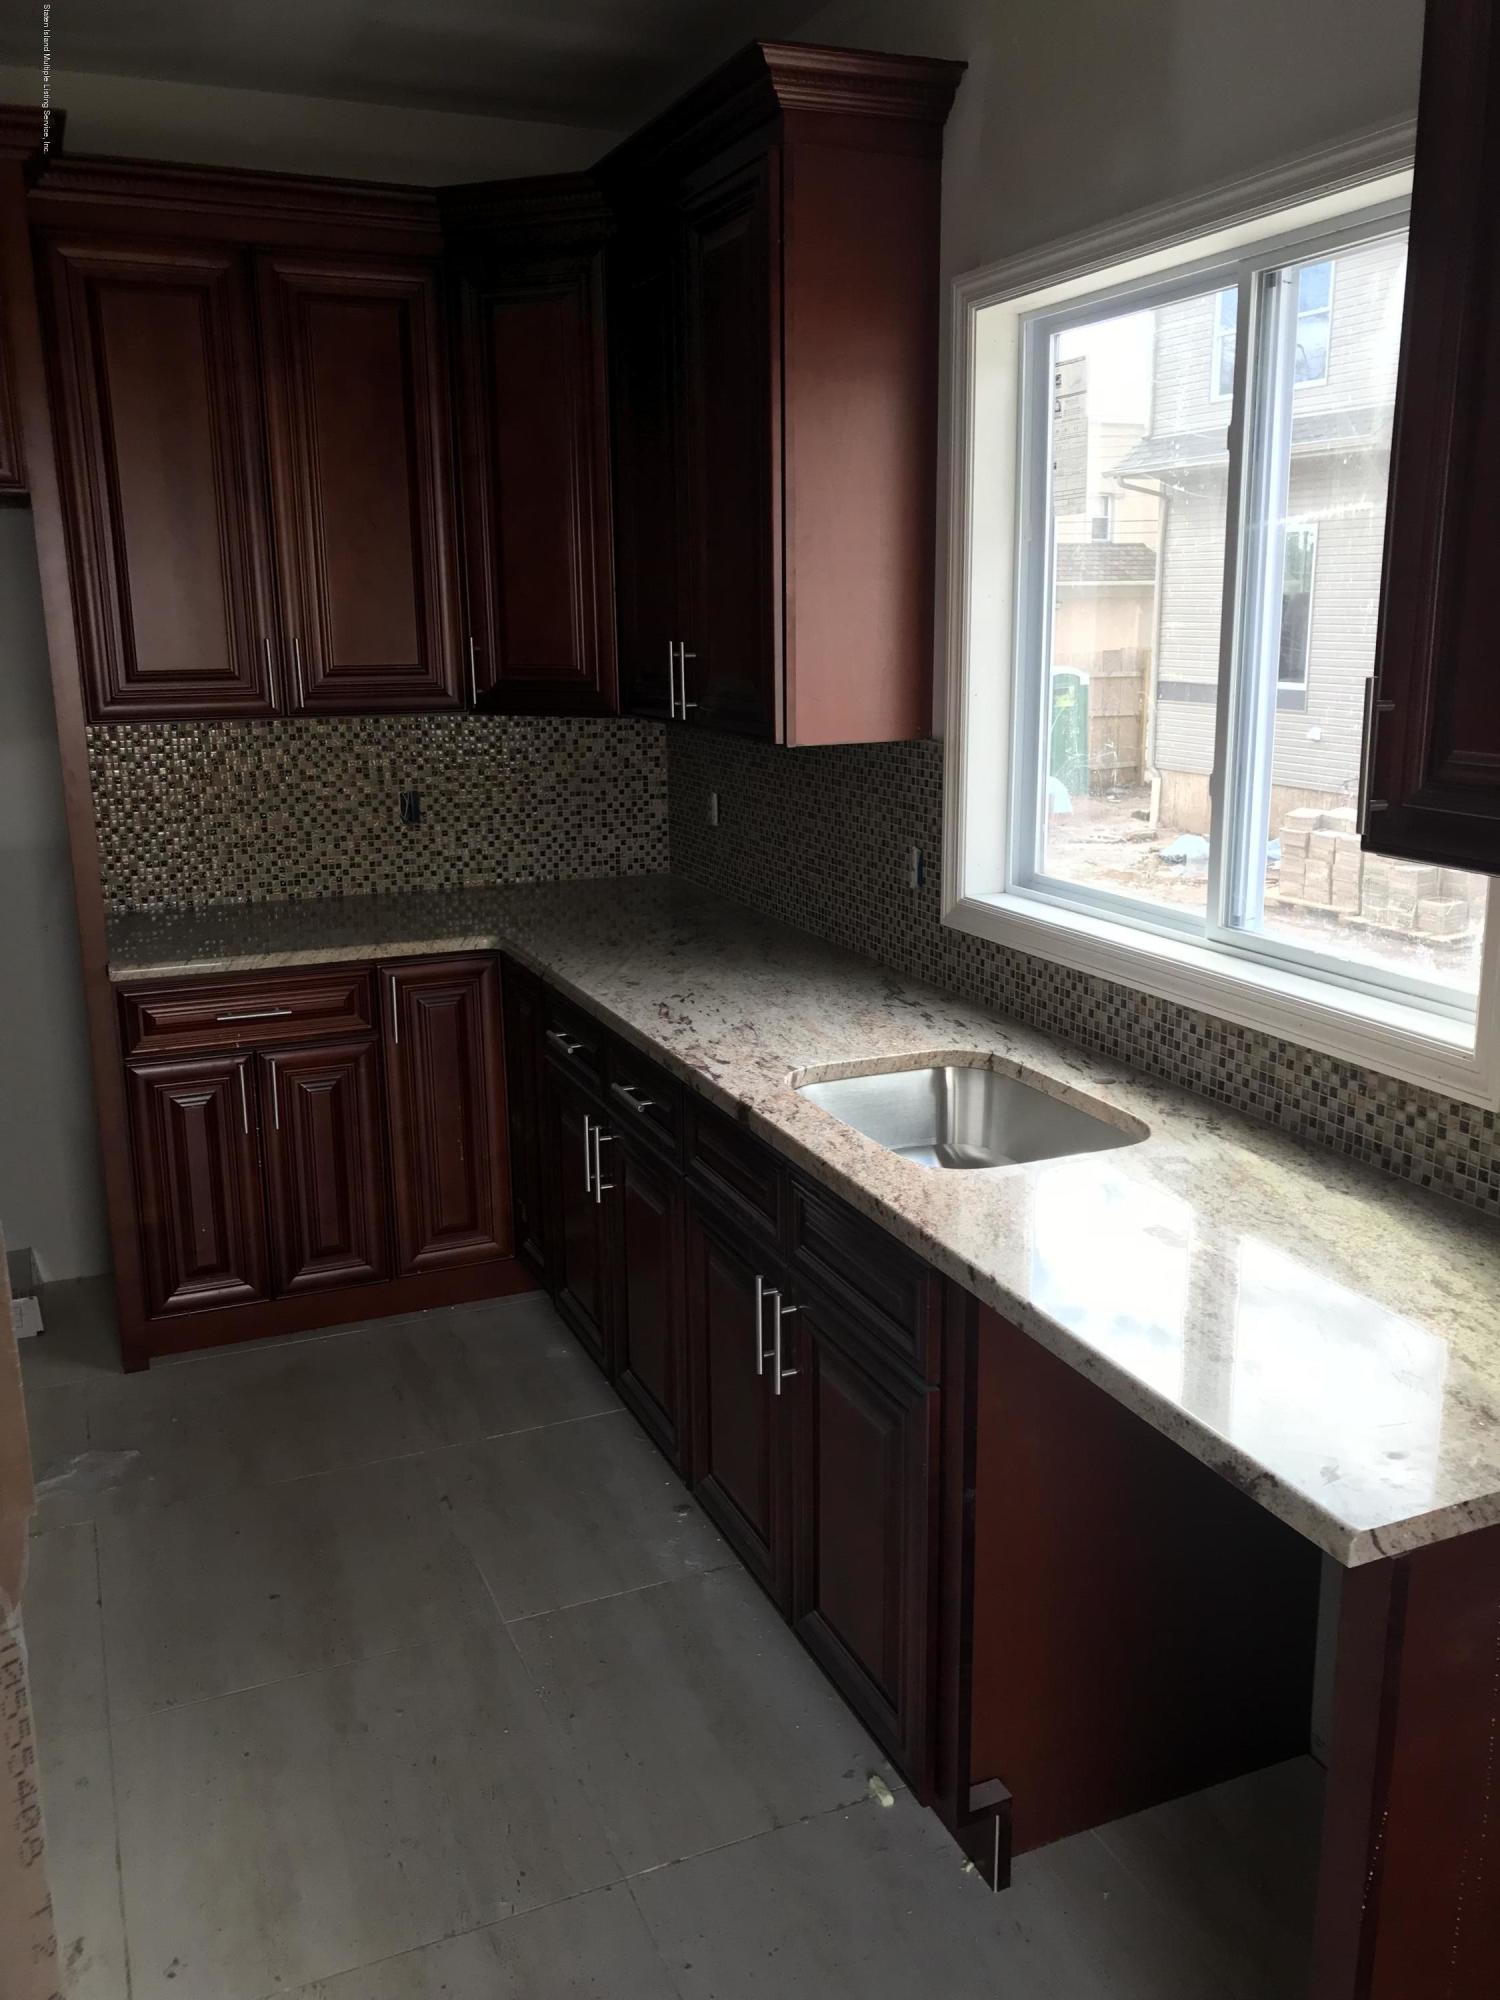 Single Family - Semi-Attached 167 Sand Lane  Staten Island, NY 10305, MLS-1125317-3